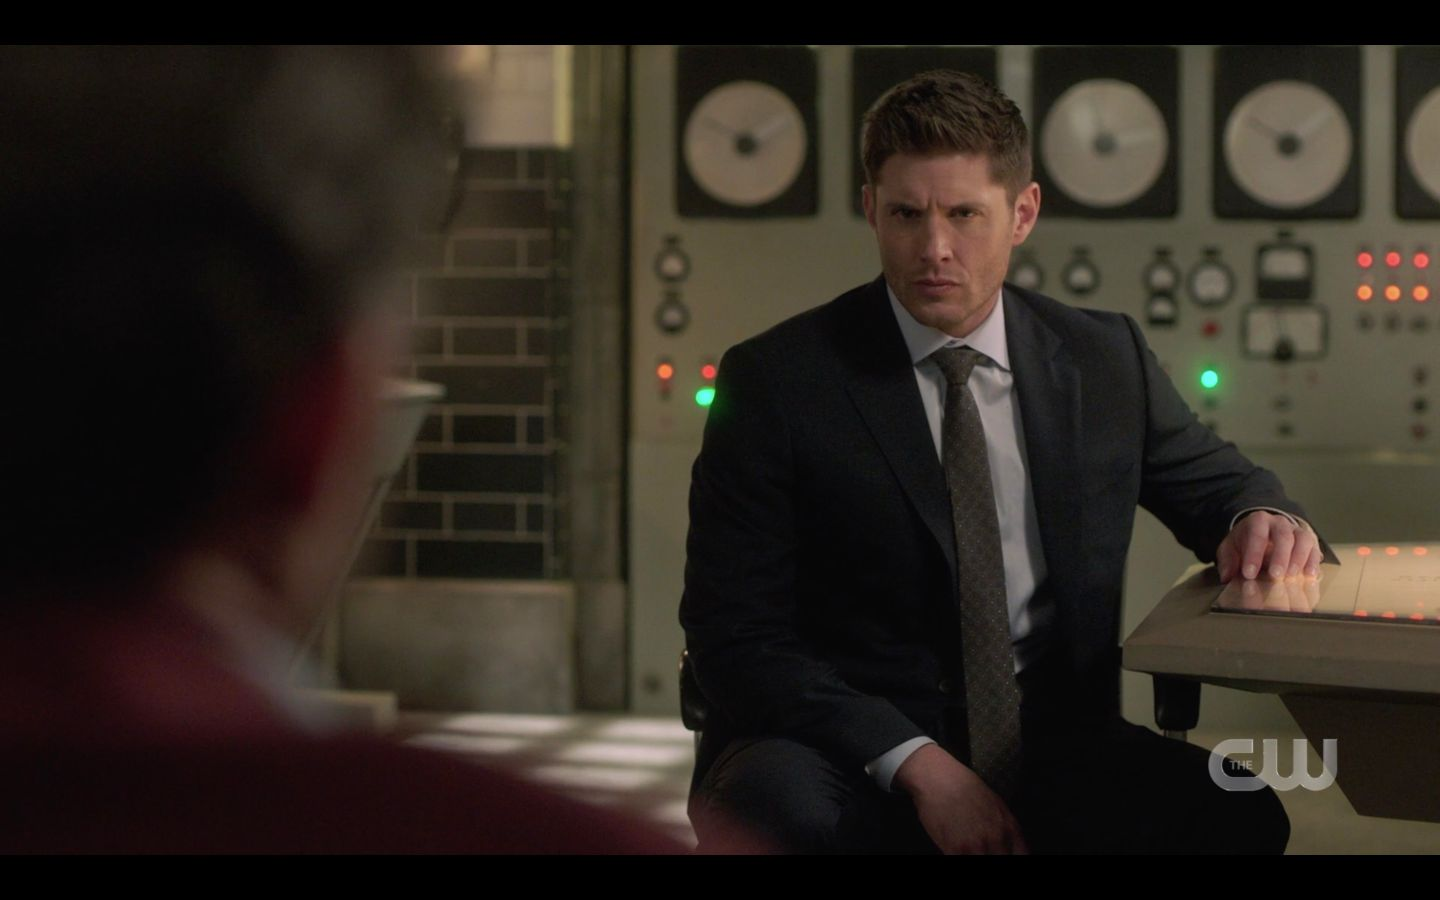 Dean Winchester reacting to Chuck on Jack death SPN 14.20